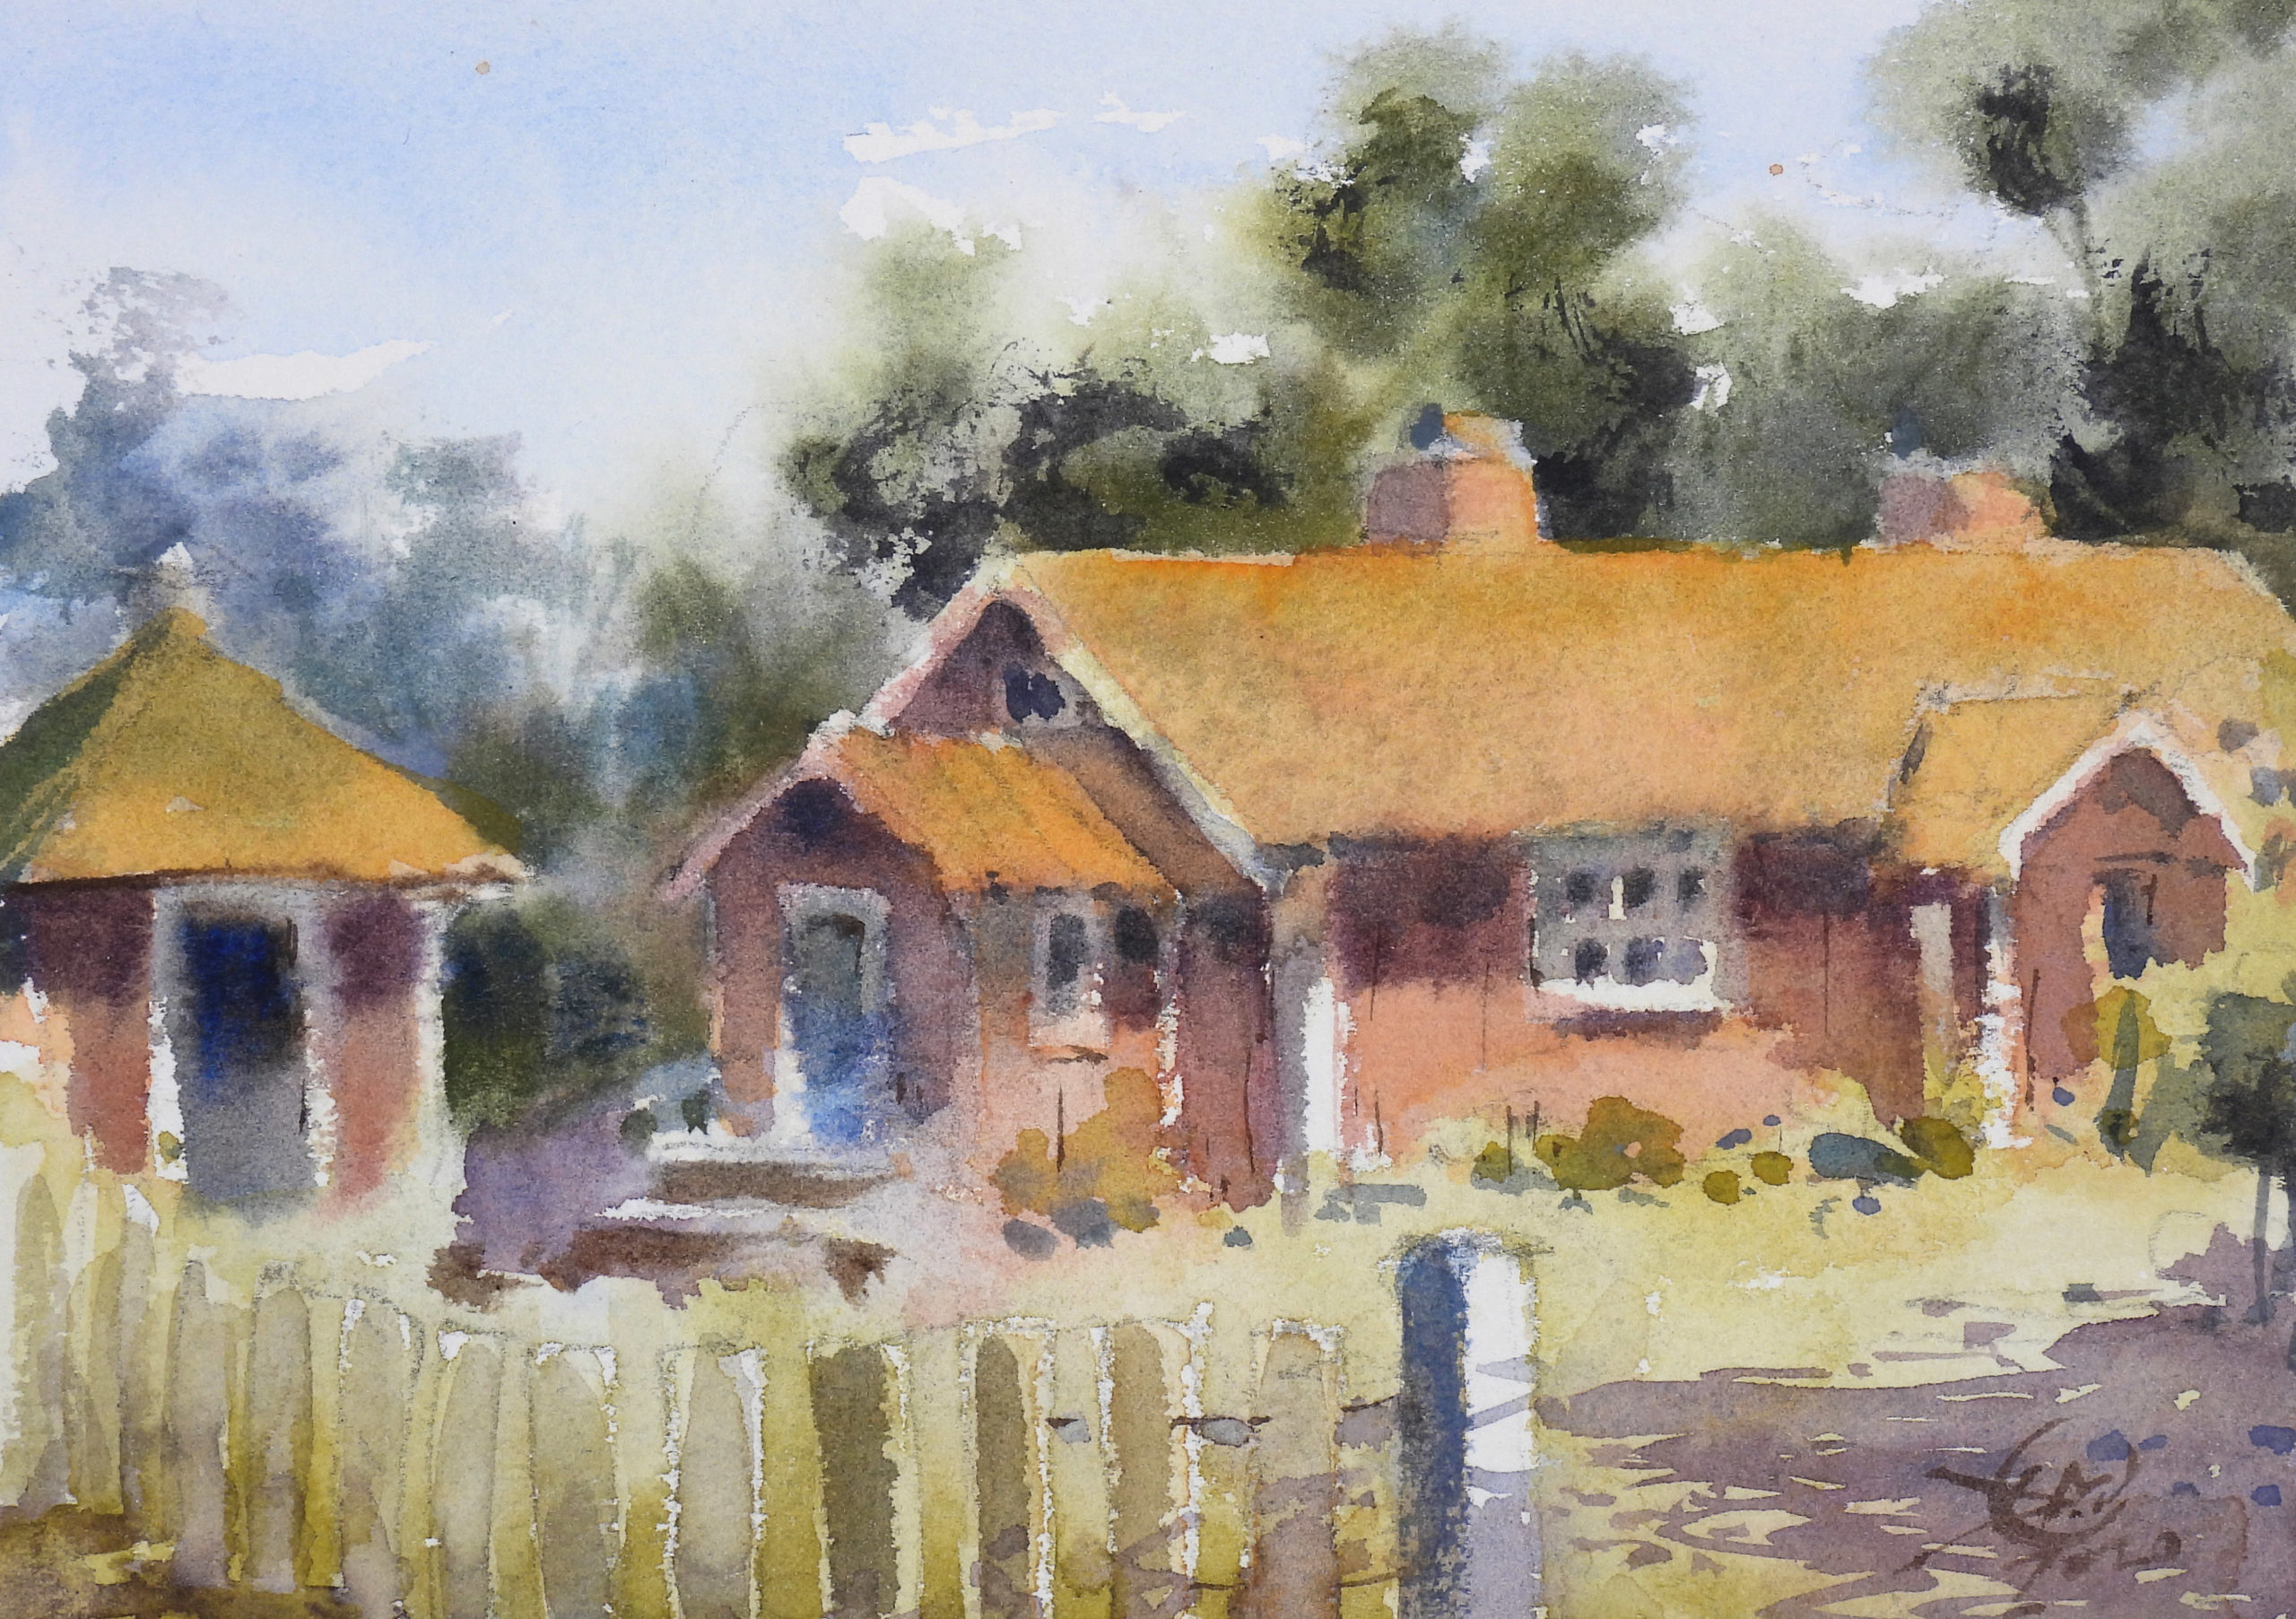 watercolour sketch of summer house